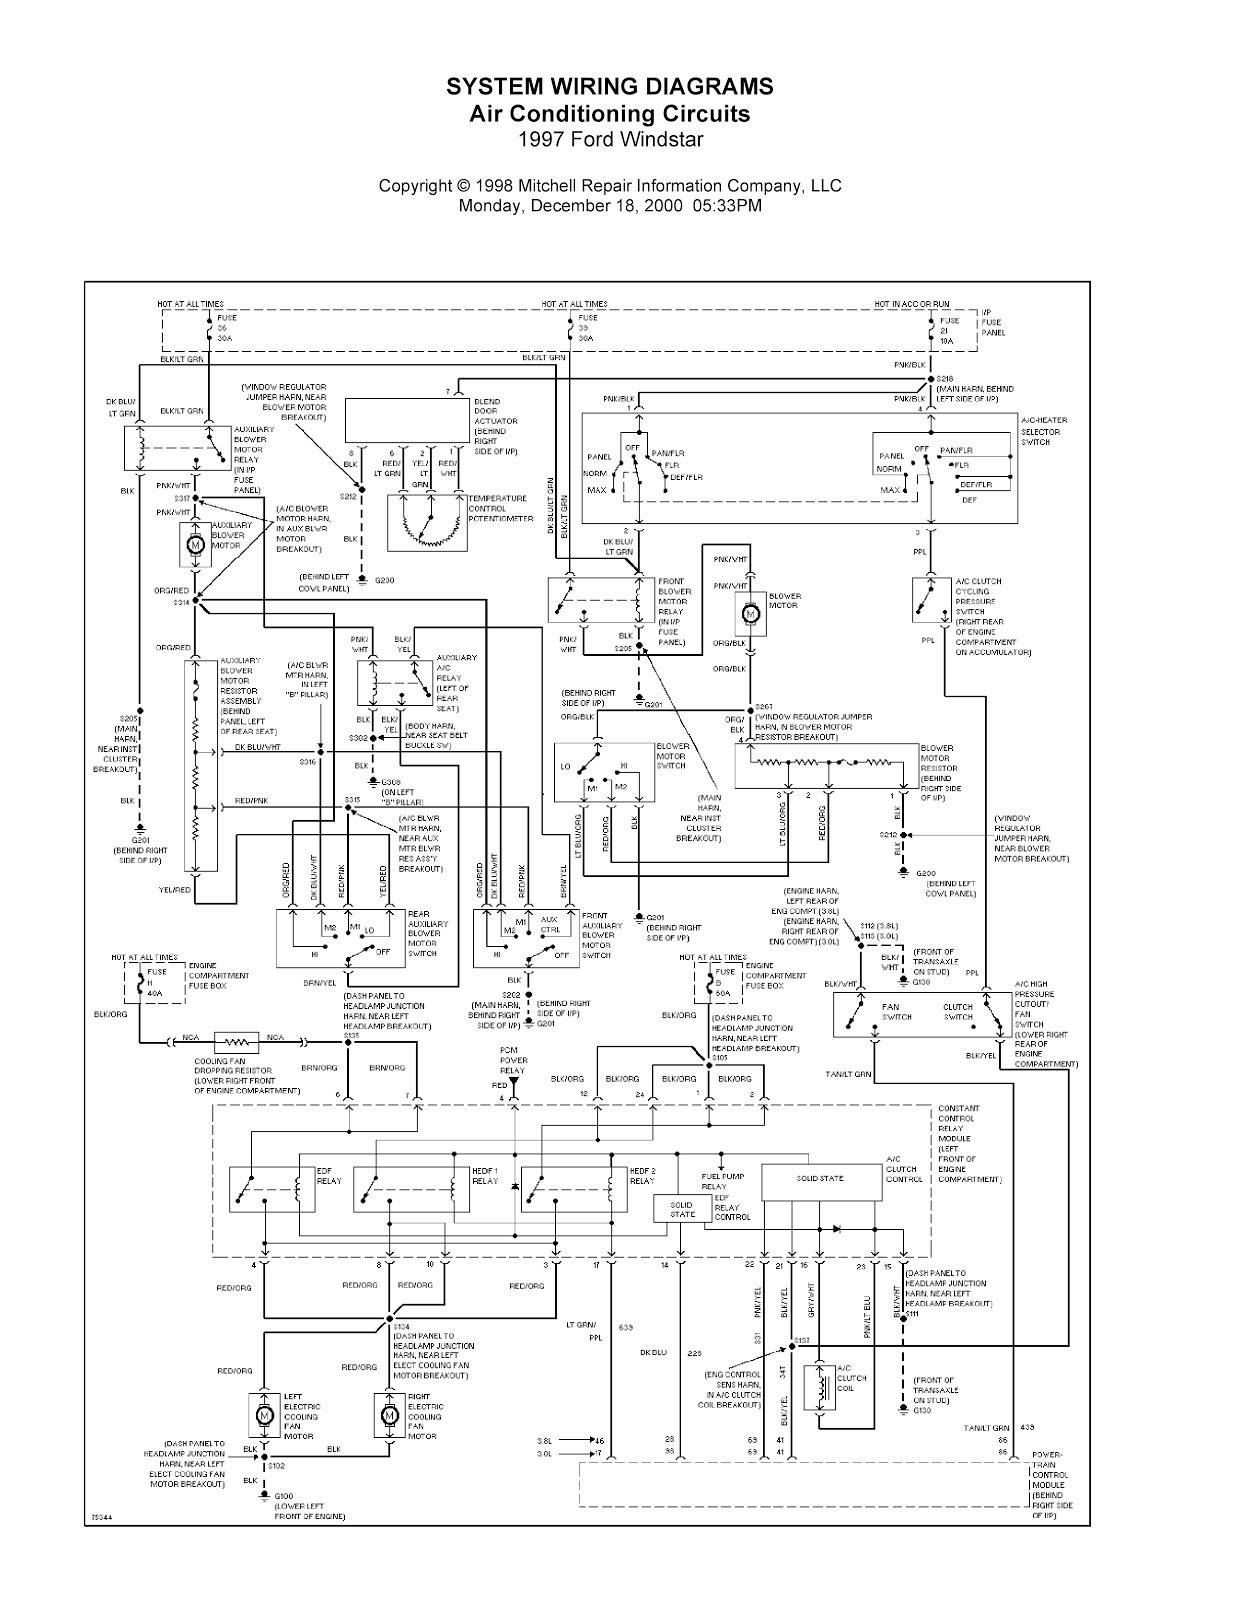 hight resolution of wiring diagram for ford windstar wiring diagram post 1996 ford windstar wiring diagram 1996 ford windstar wiring diagram